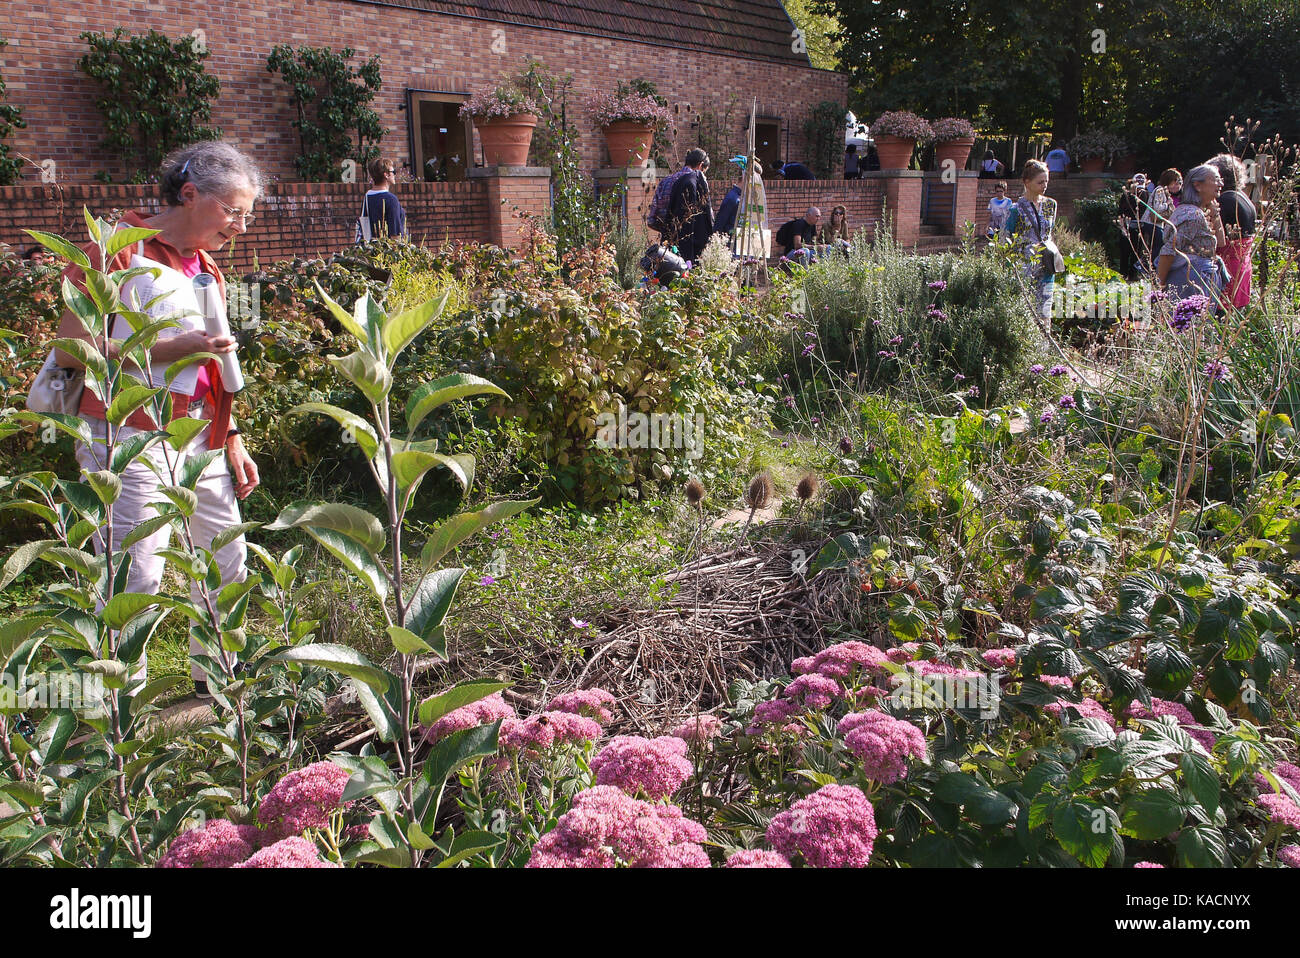 House of Gardening teaches practical experience to amateur gardeners at Bercy Park, Paris, France - Stock Image